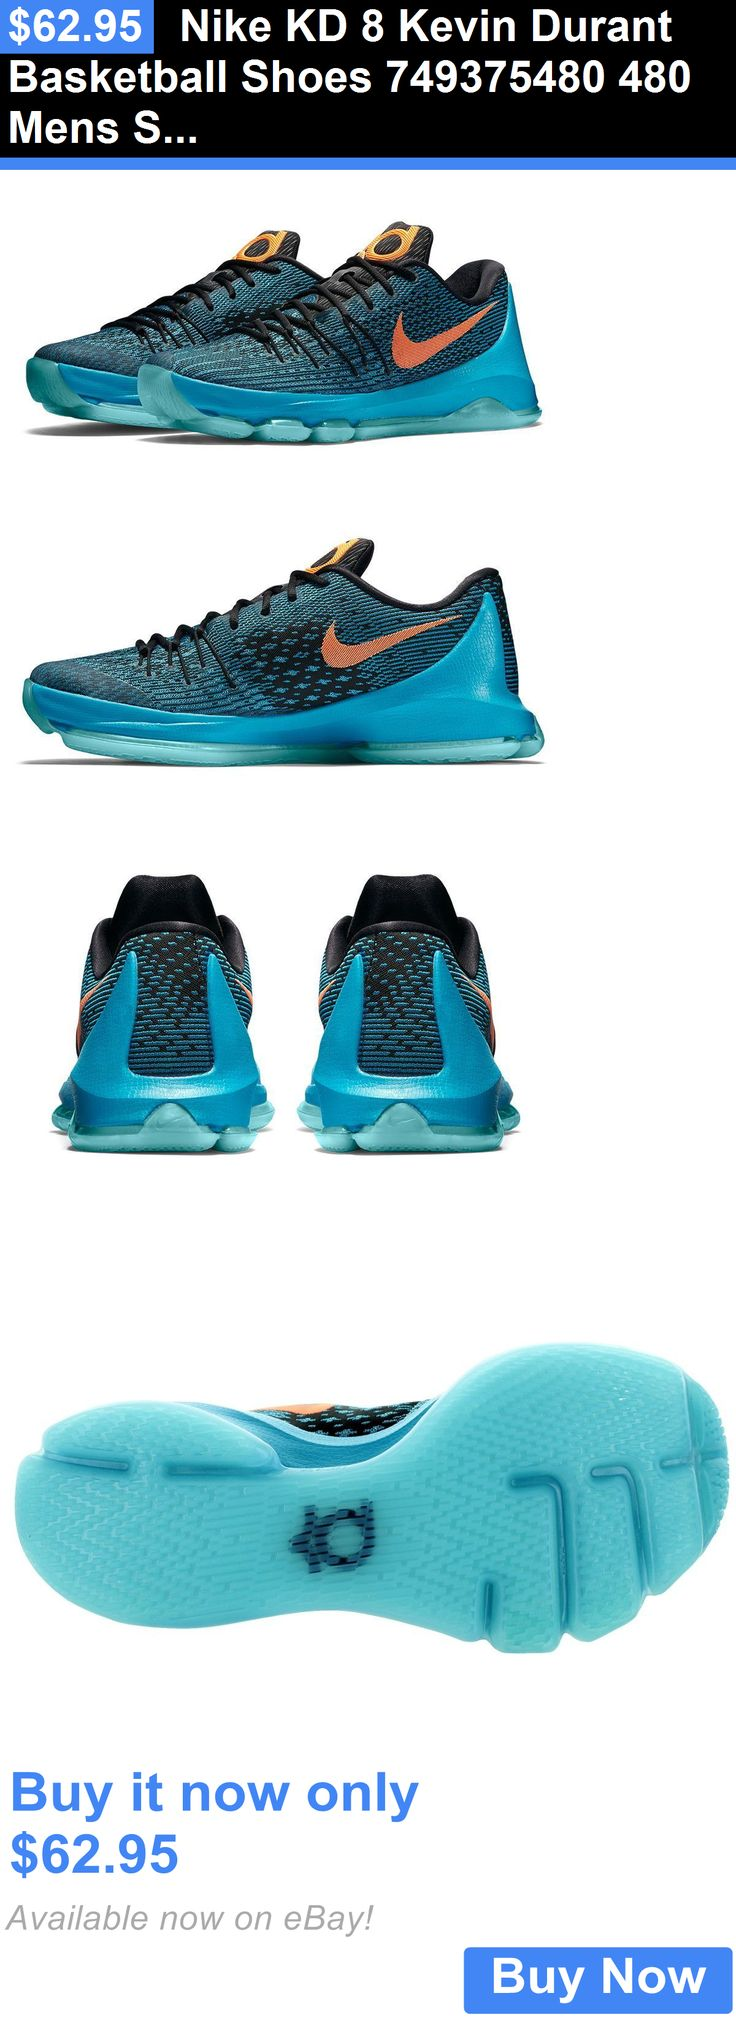 Basketball: Nike Kd 8 Kevin Durant Basketball Shoes 749375480 480 Mens  Sizes New $180 BUY